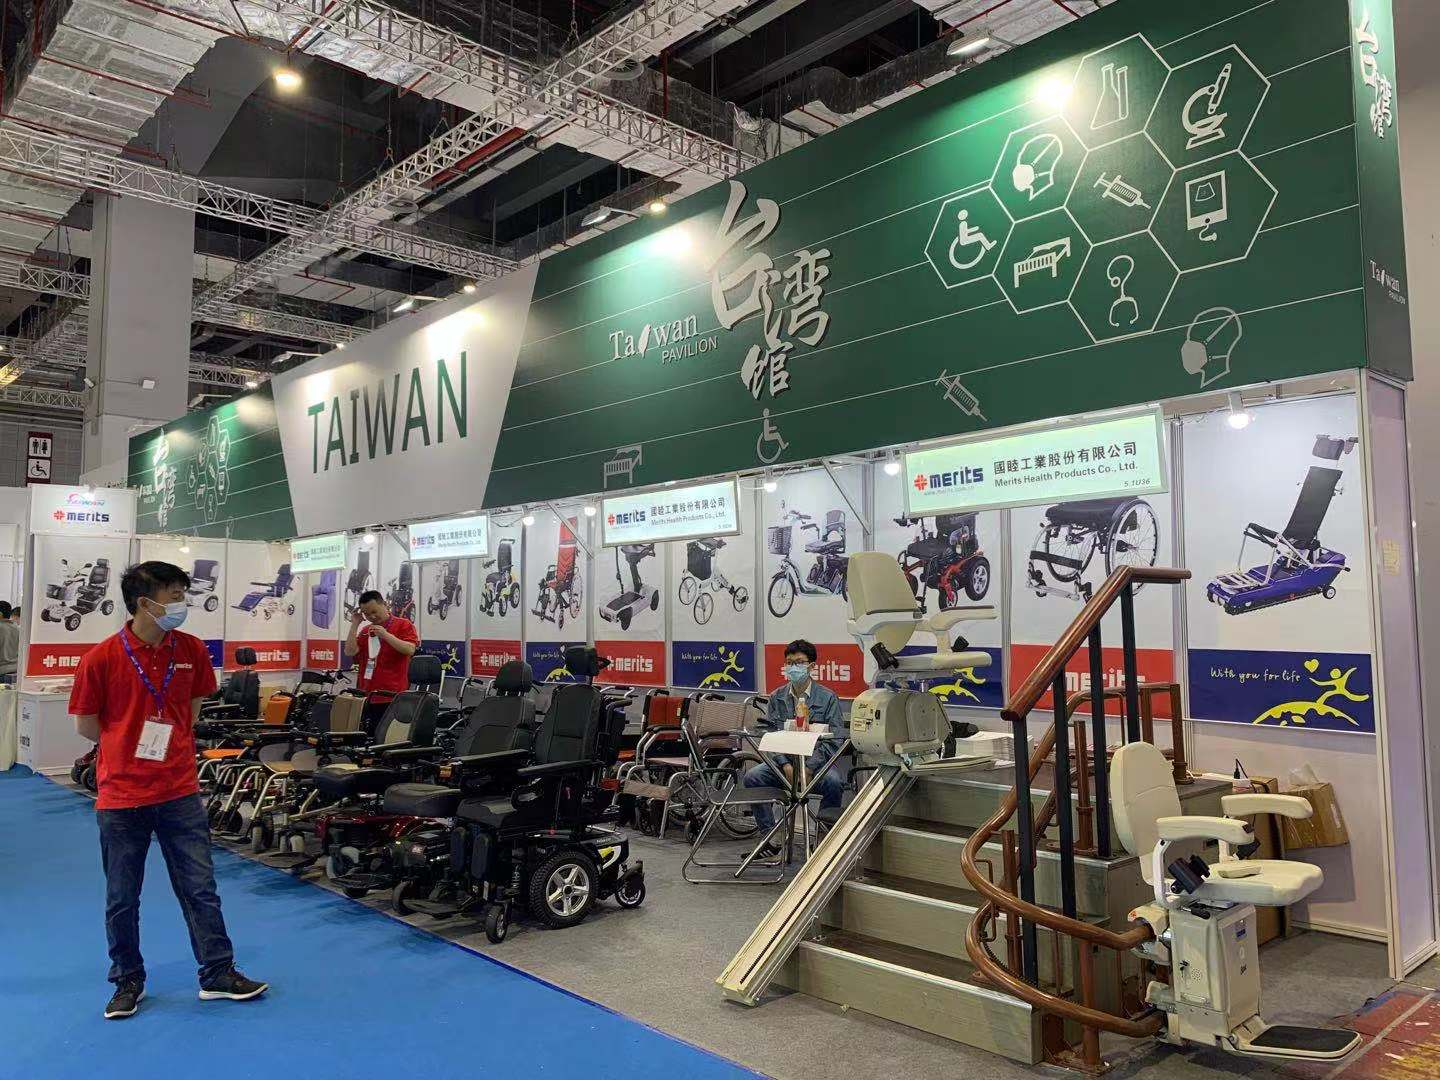 The 84th Shanghai medical exhibition from May 13th to May 16th